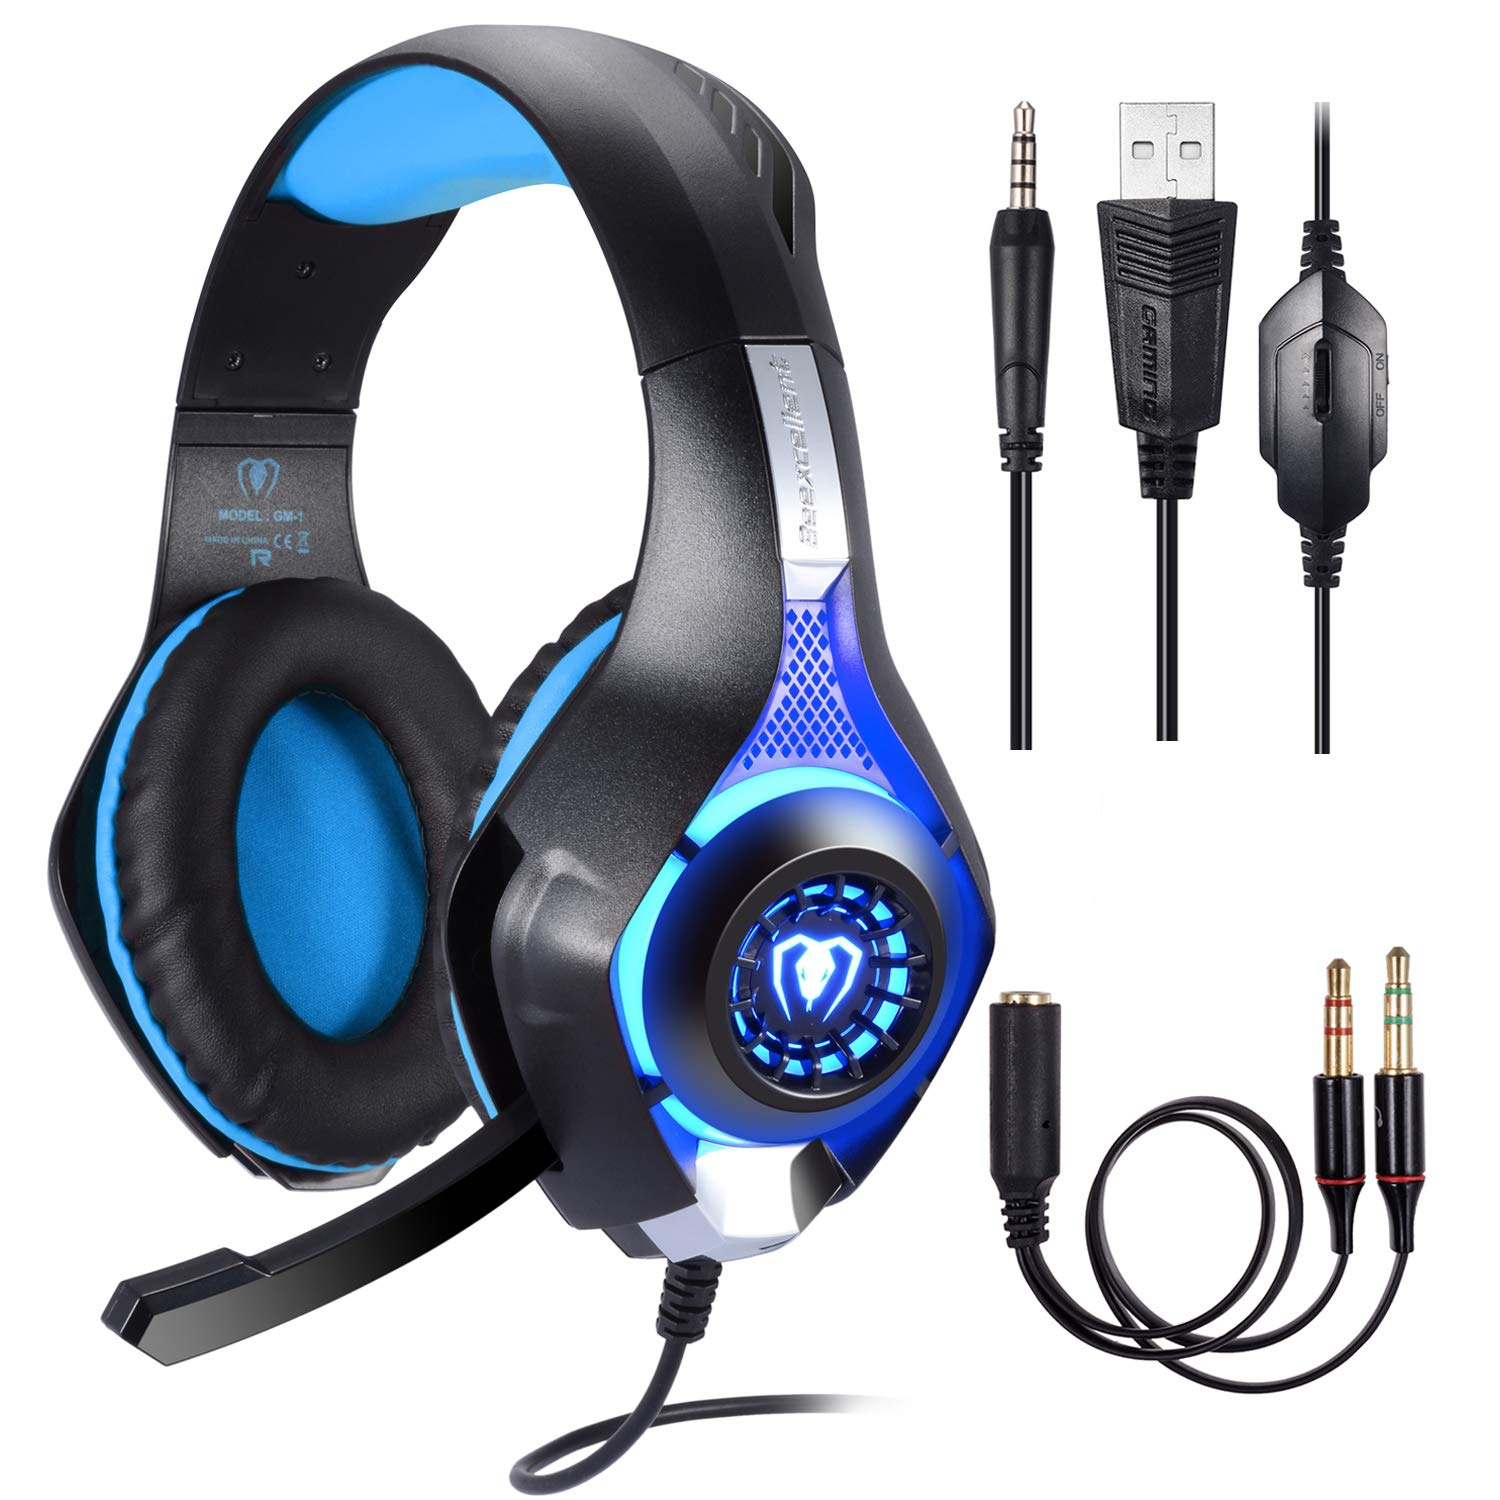 BlueFire Professional 3.5mm PS4 Gaming Headset Headphone with Mic and LED Lights for Playstation 4, Xbox one,Laptop, Computer (Blue) by BlueFire